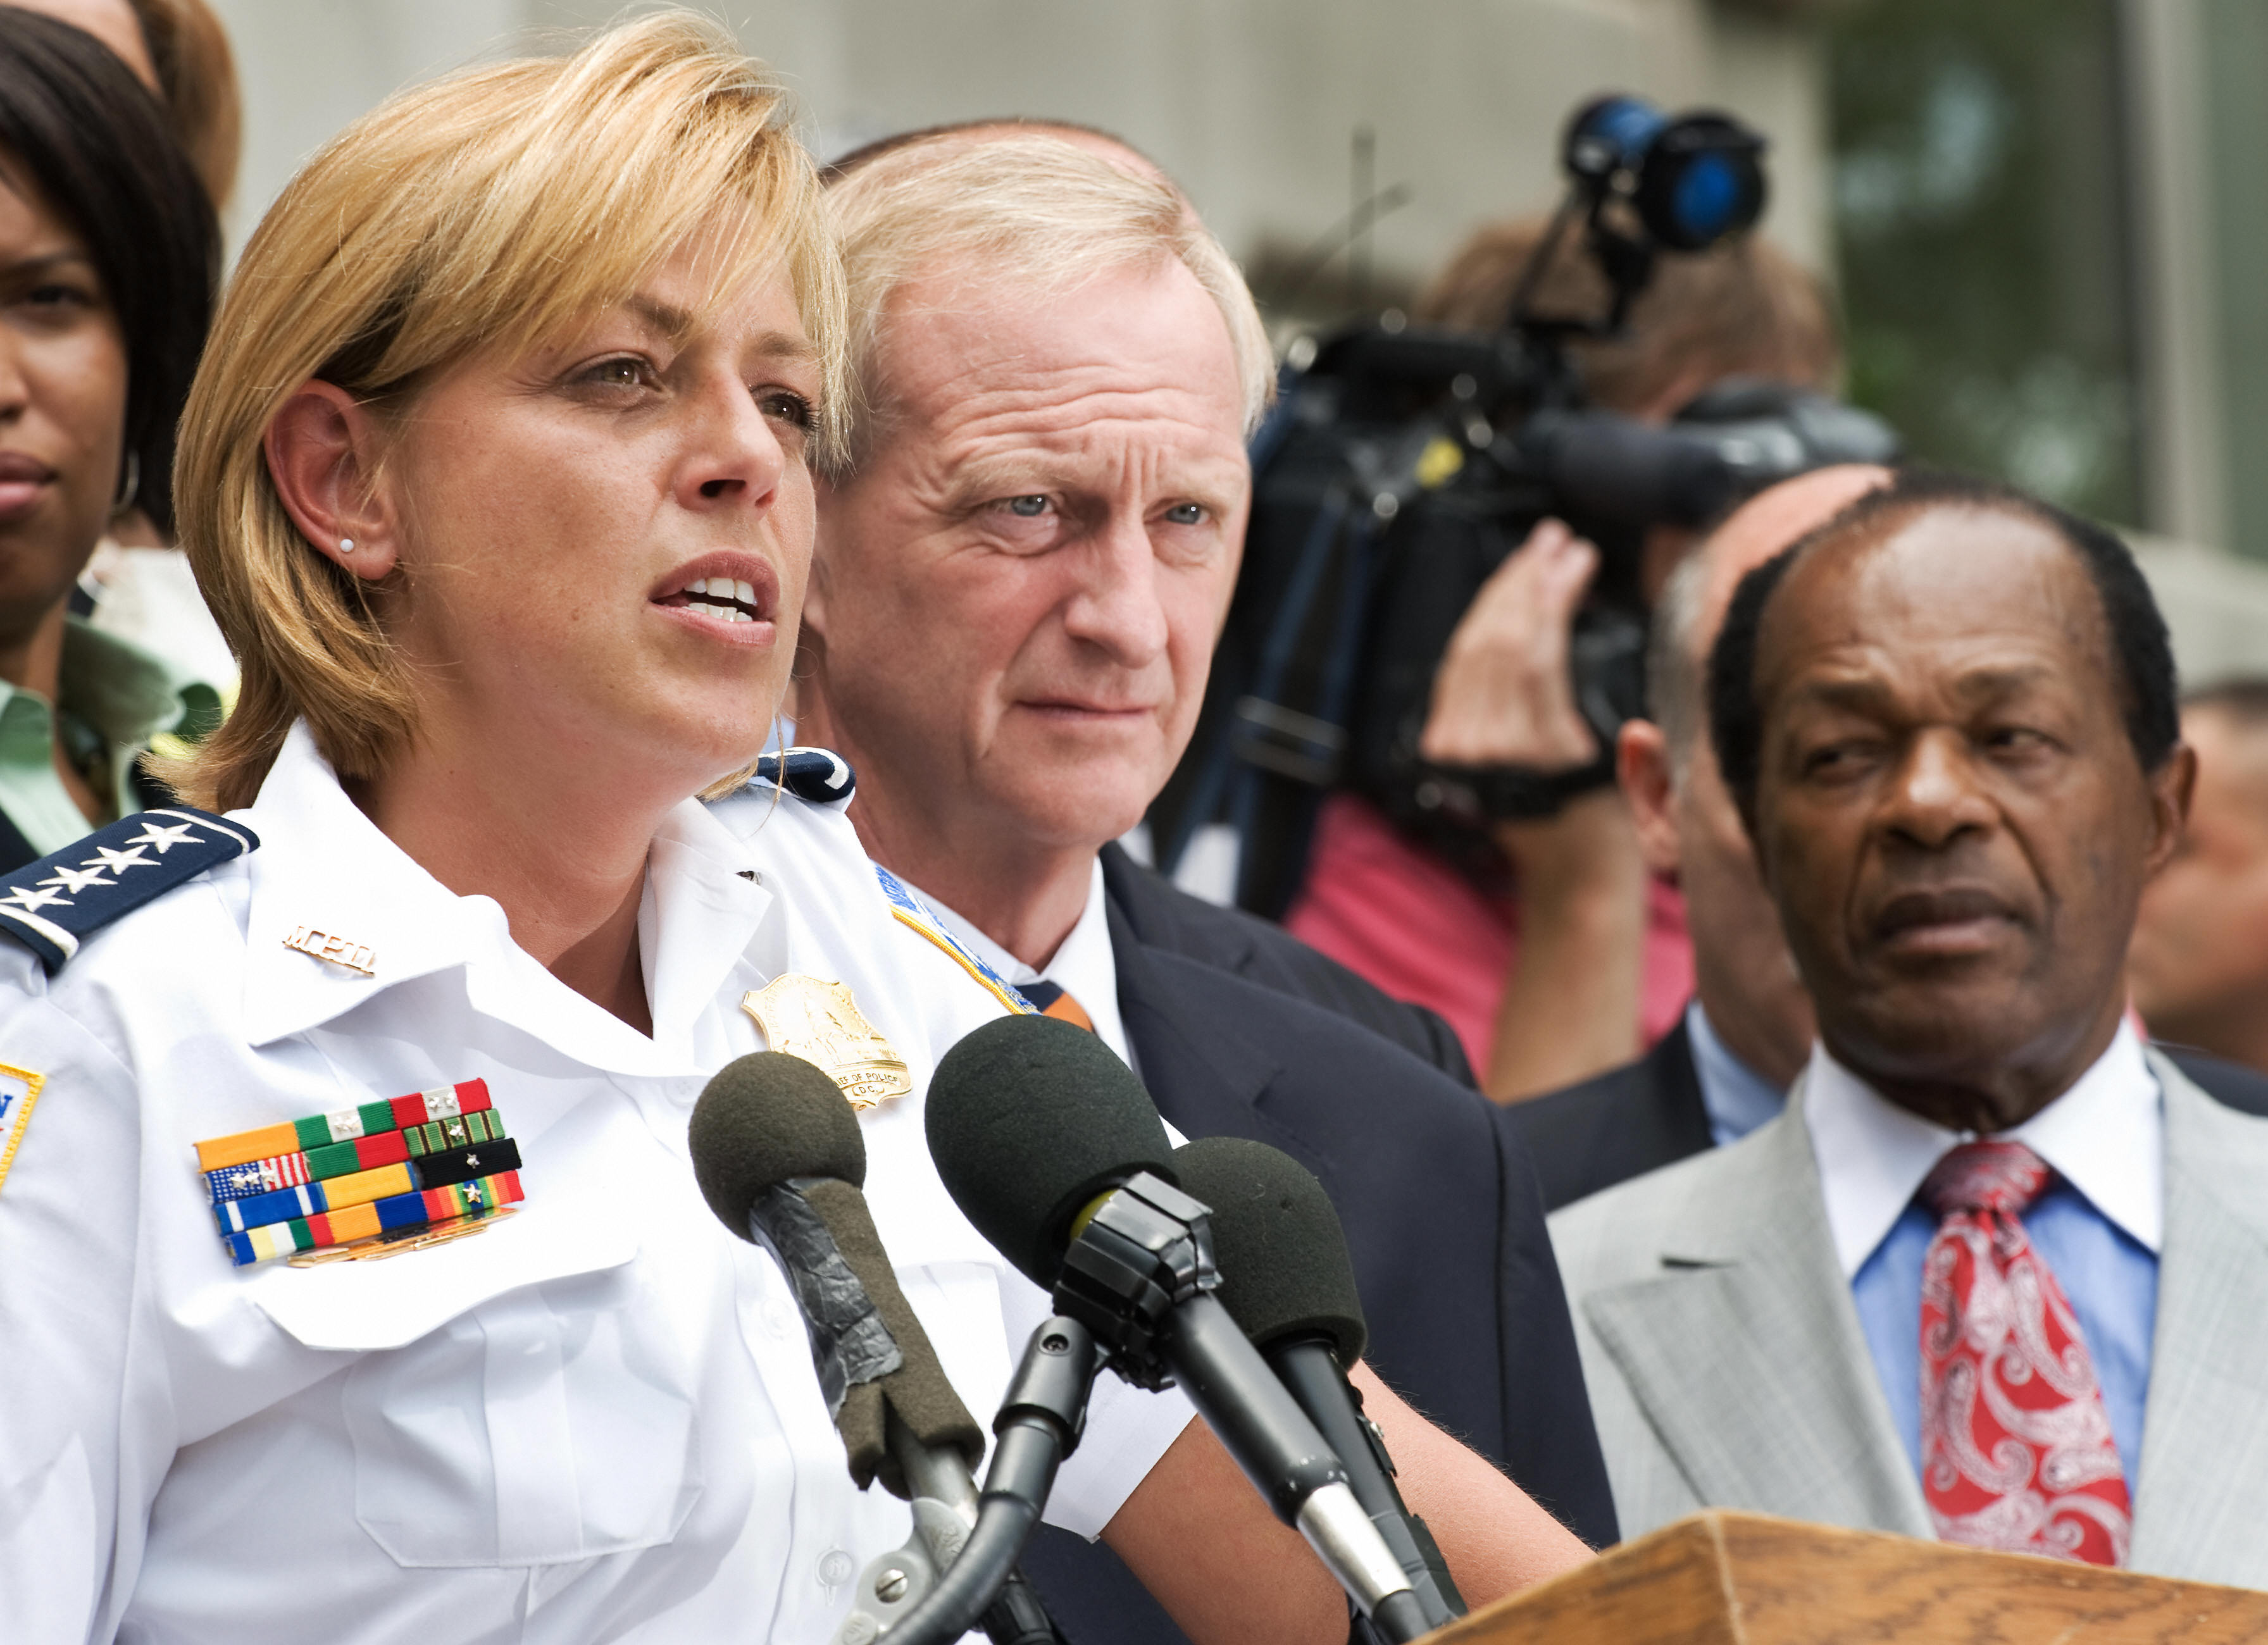 Washington, DC, Police Chief Cathy L. Lanier(L), City Council members Jack Evans(C), and Marion Barry(R) listen to reporter's questions as they conduct a press conference on the steps of the John A. Wilson Building June 26, 2008 reacting after the the Supreme Court decision, District of Columbia v. Heller, which was argued nearly four months ago, to settle the decades-old debate over whether the Second Amendment grants individuals the right to own firearms. (Photo: PAUL J. RICHARDS/AFP/Getty Images)